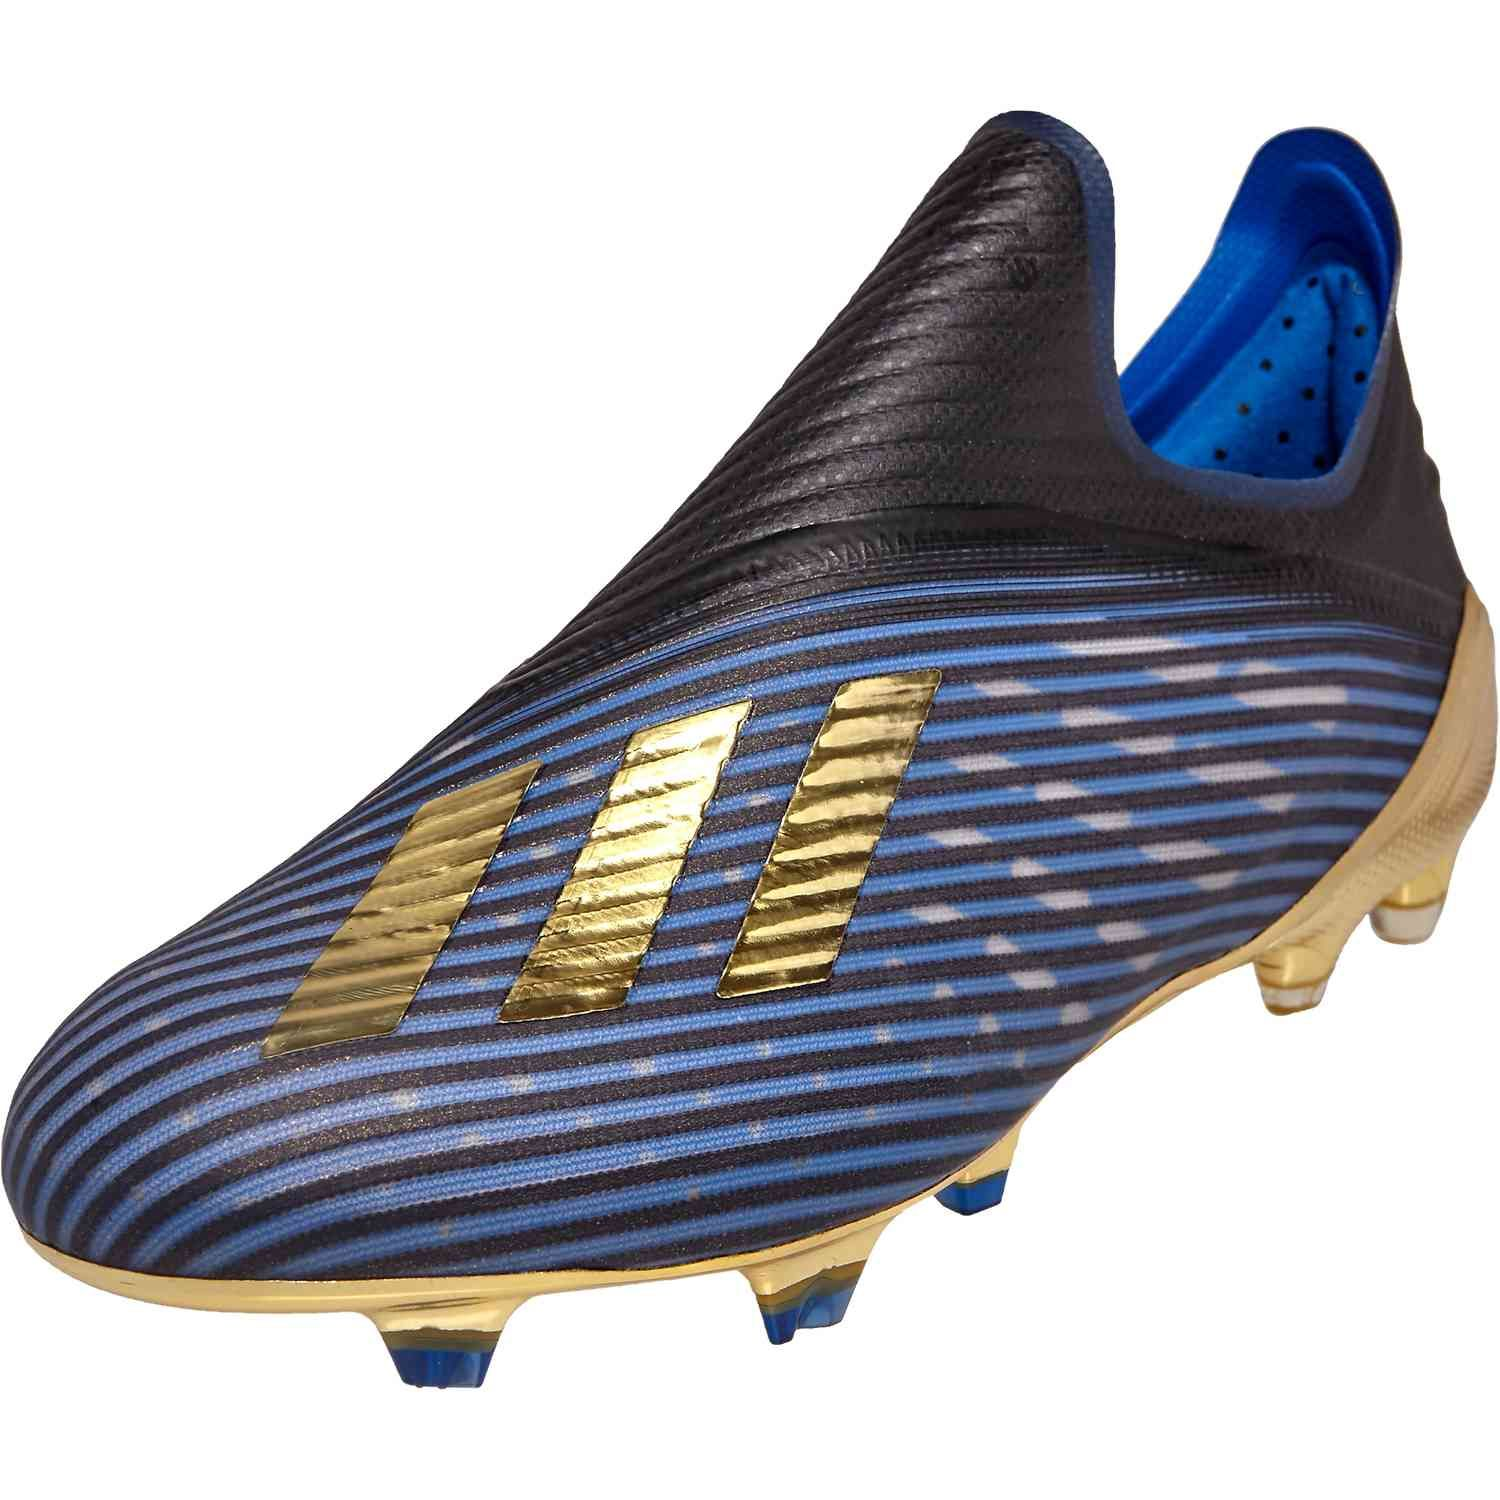 Inner Game Adidas X 19 Adidas Boots Football Boots Soccer Shoes